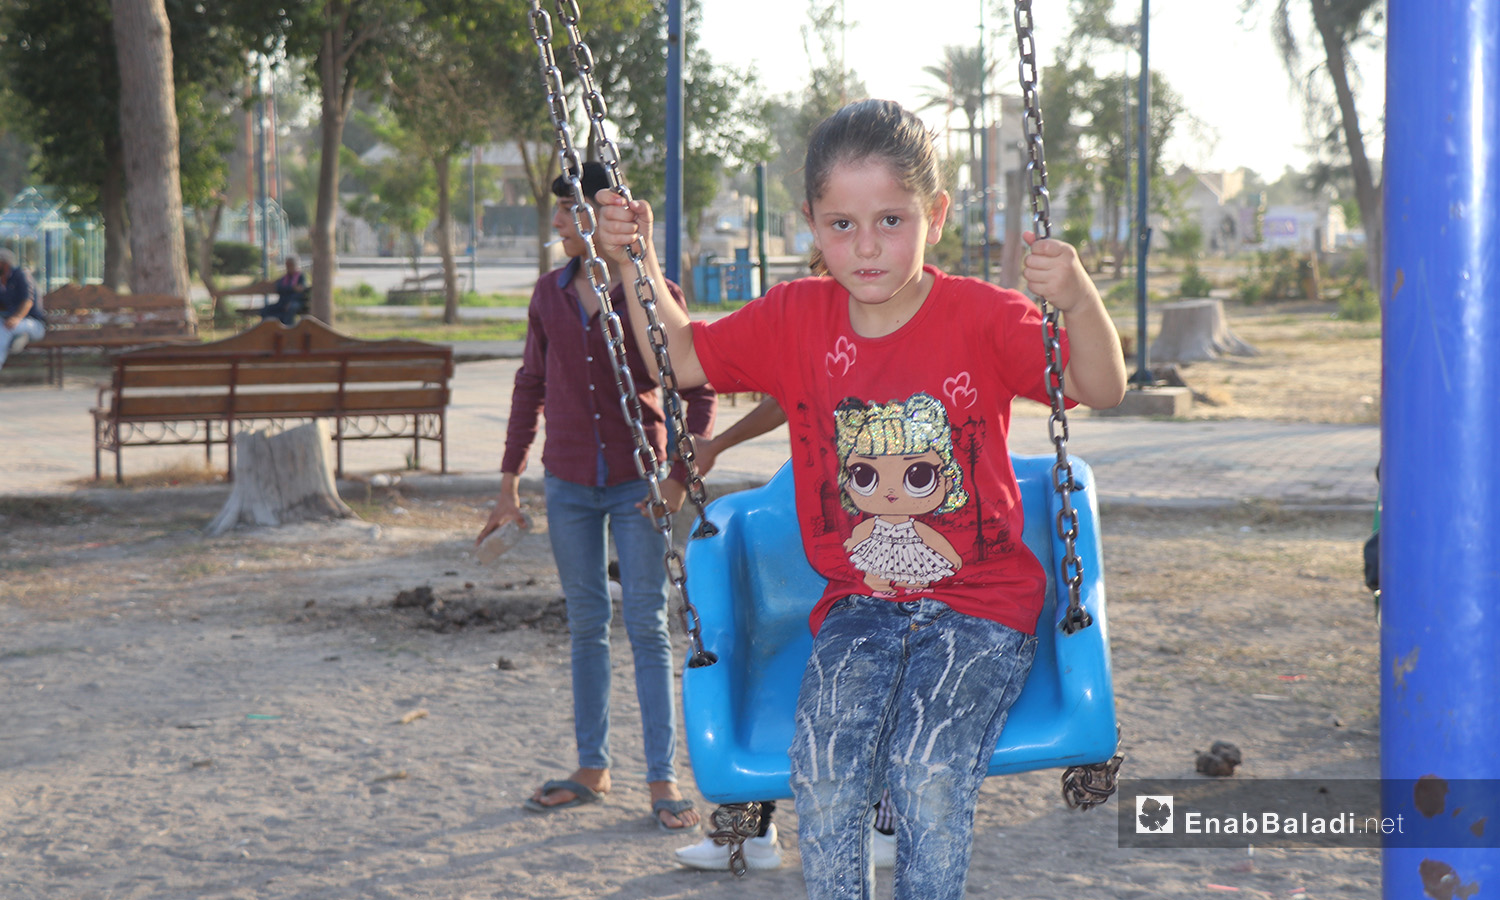 A child riding the swing in one of the parks in al-Raqqa city  - 26 July 2020 (Enab Baladi / Abdul Aziz Saleh)